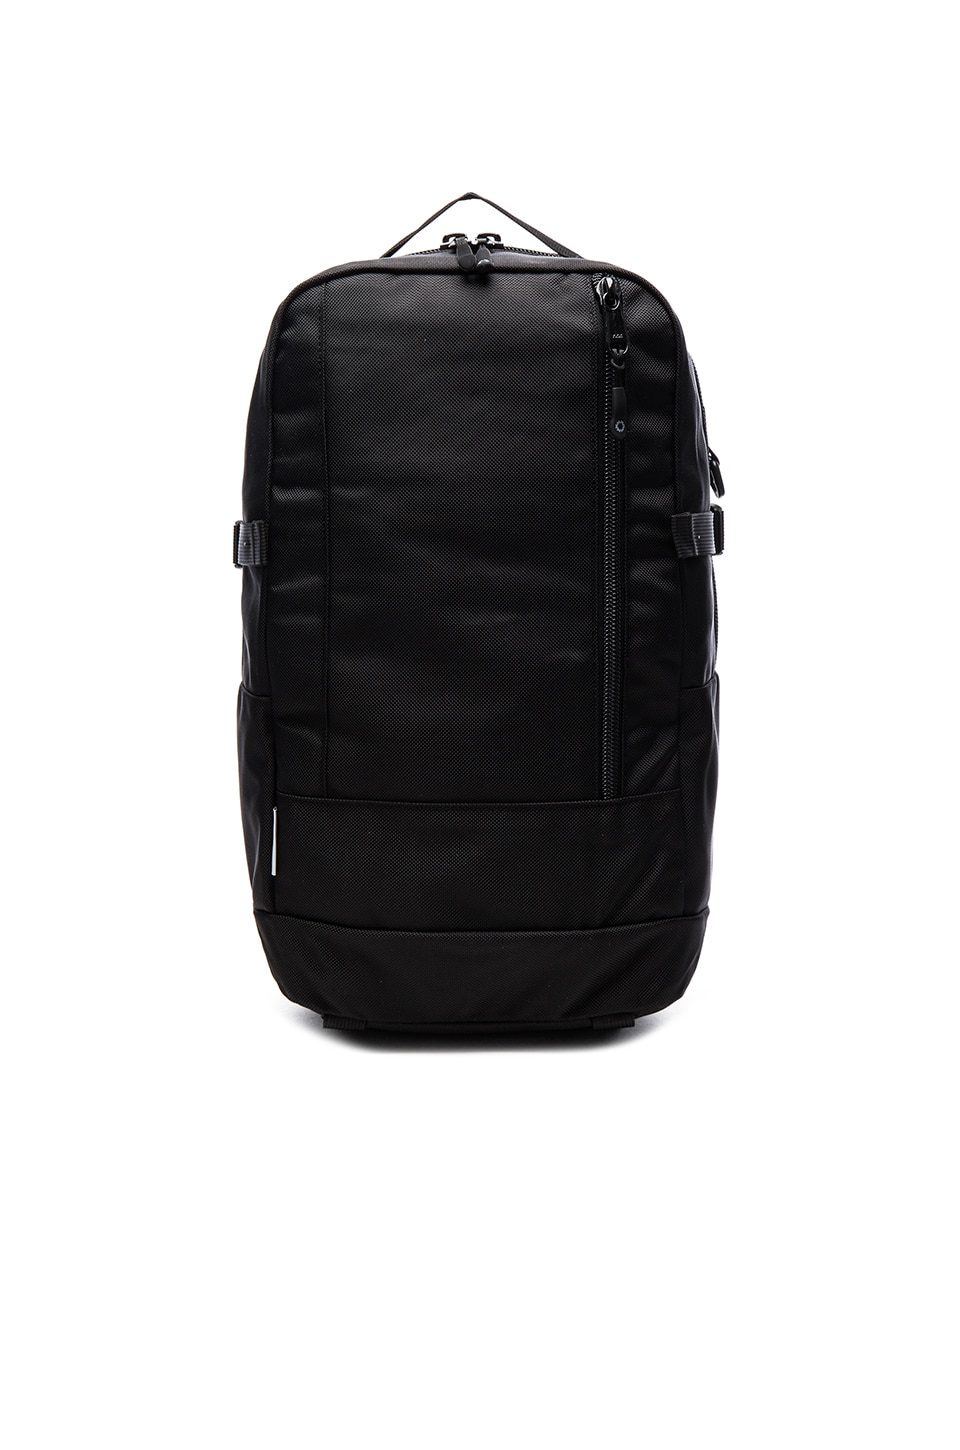 DSPTCH Daypack in Black